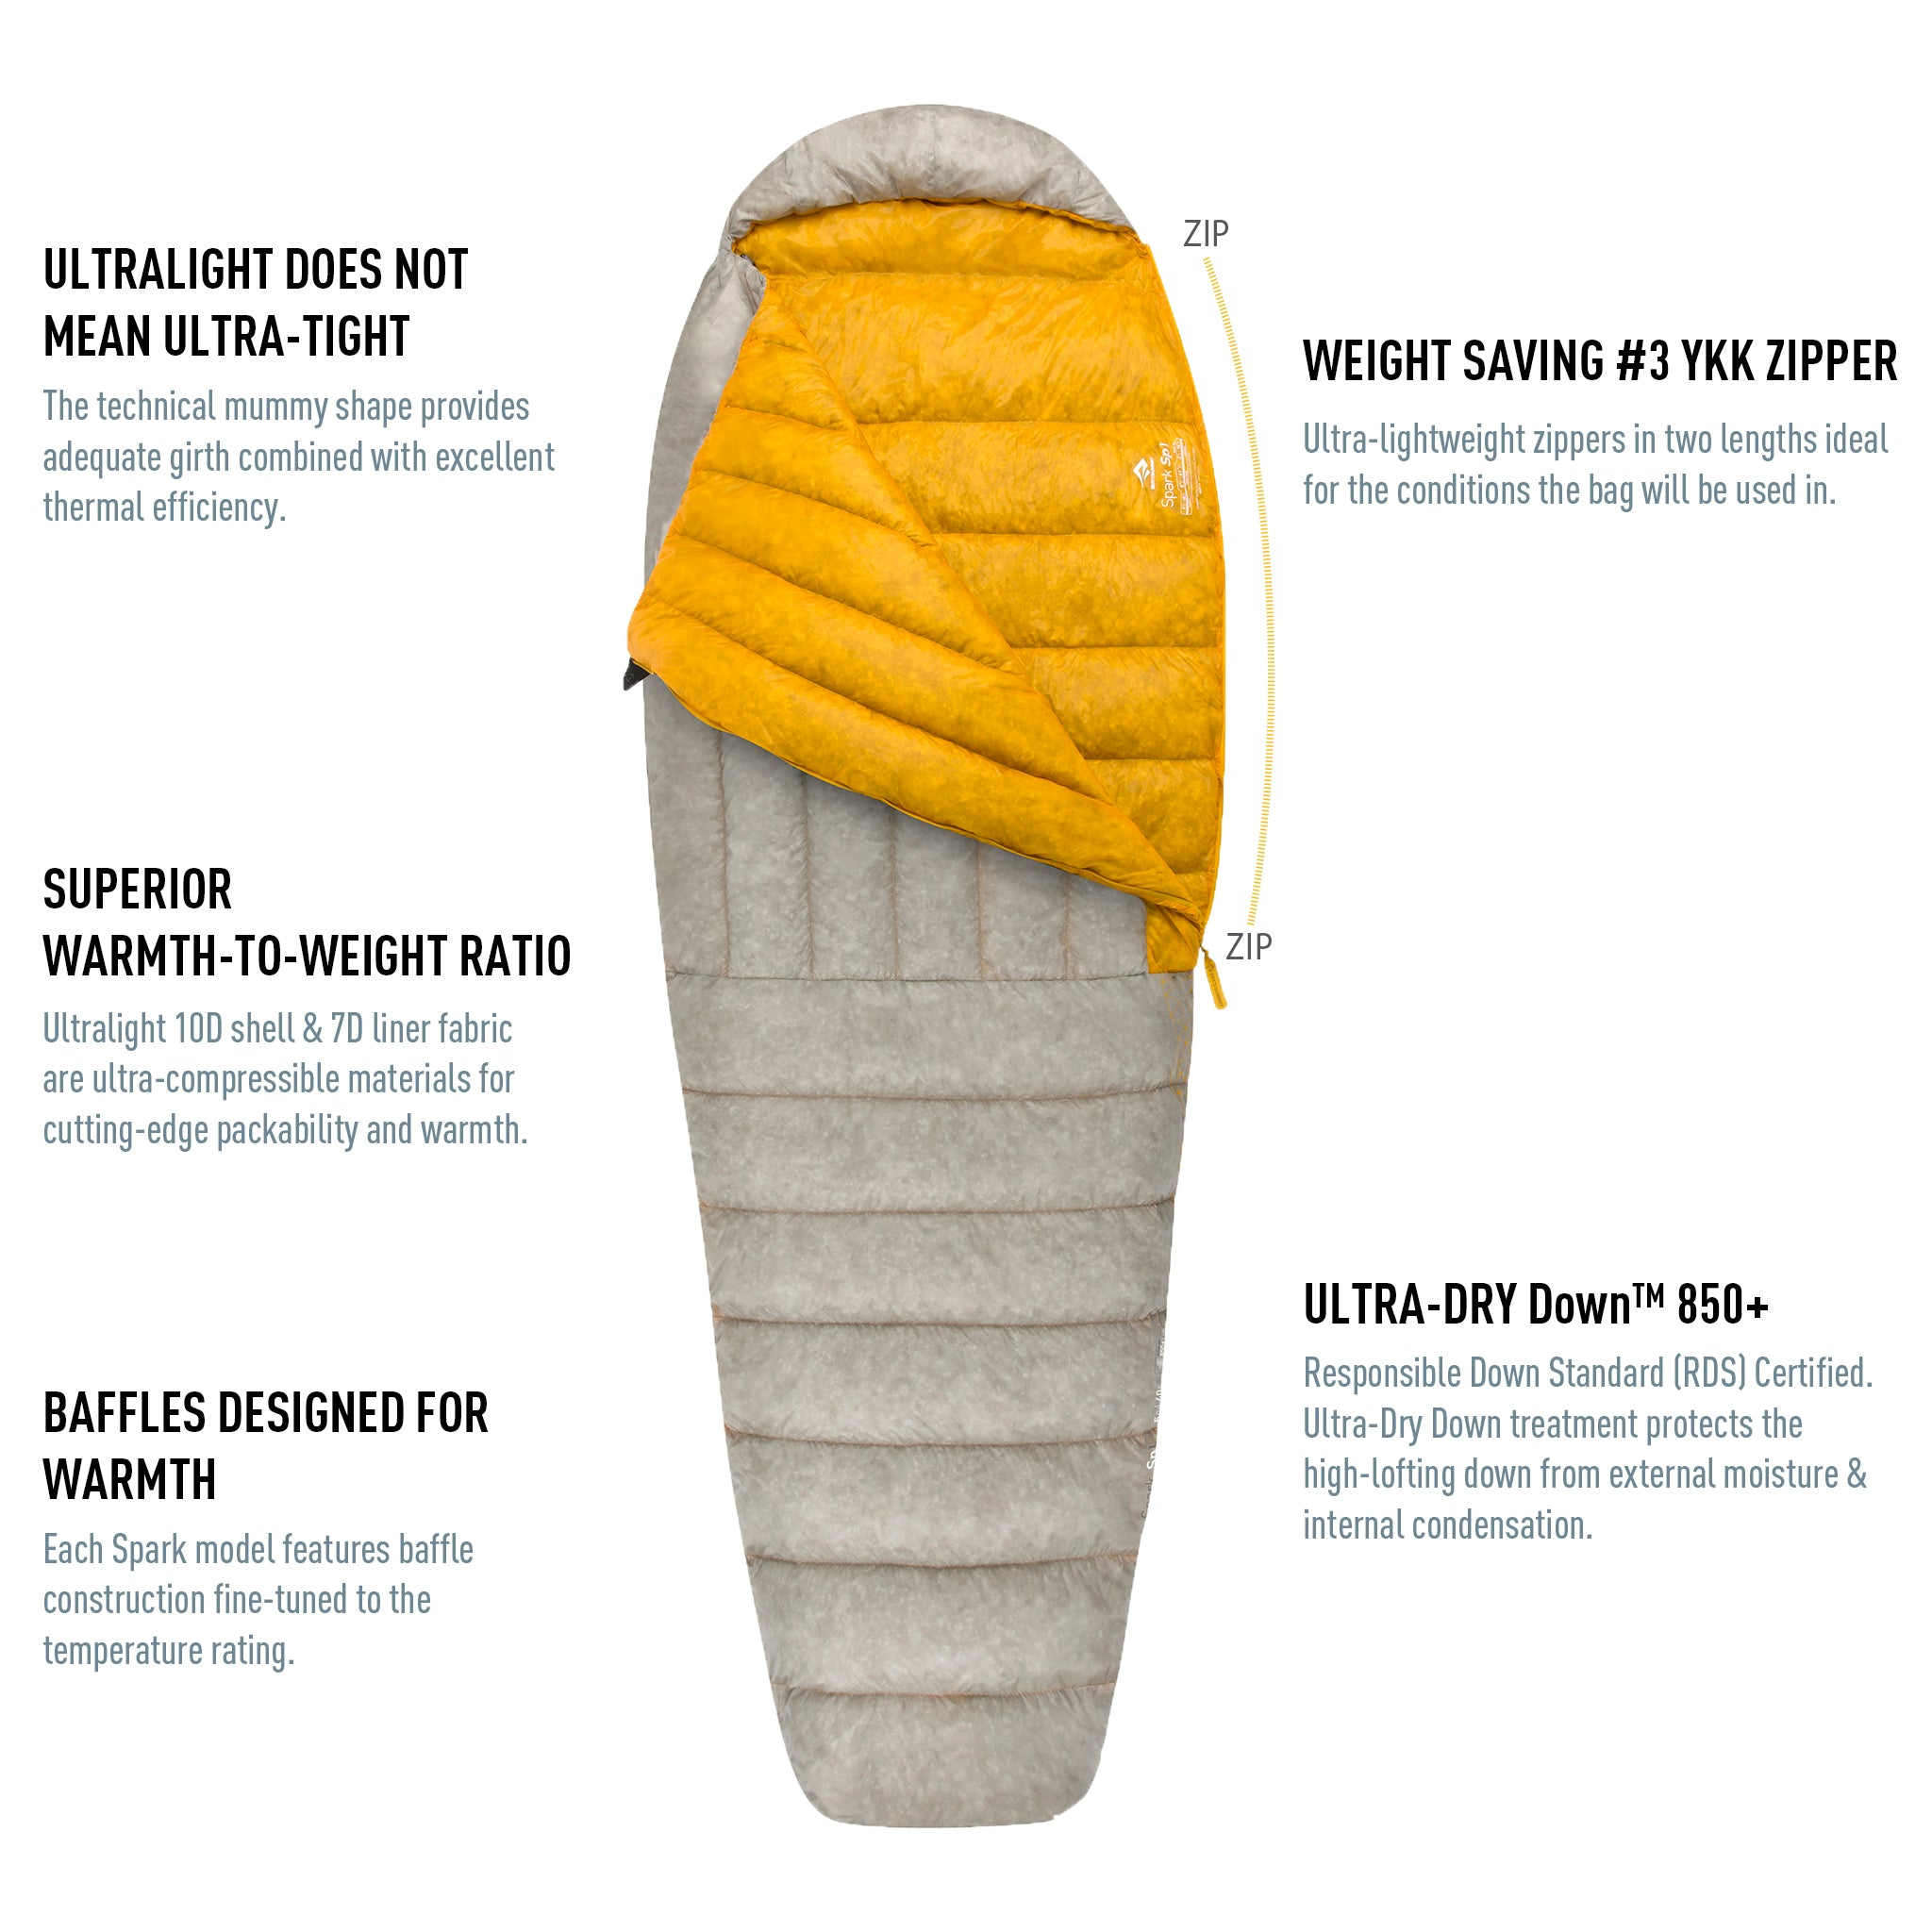 Spark Ultralight Sleeping Bag _ features